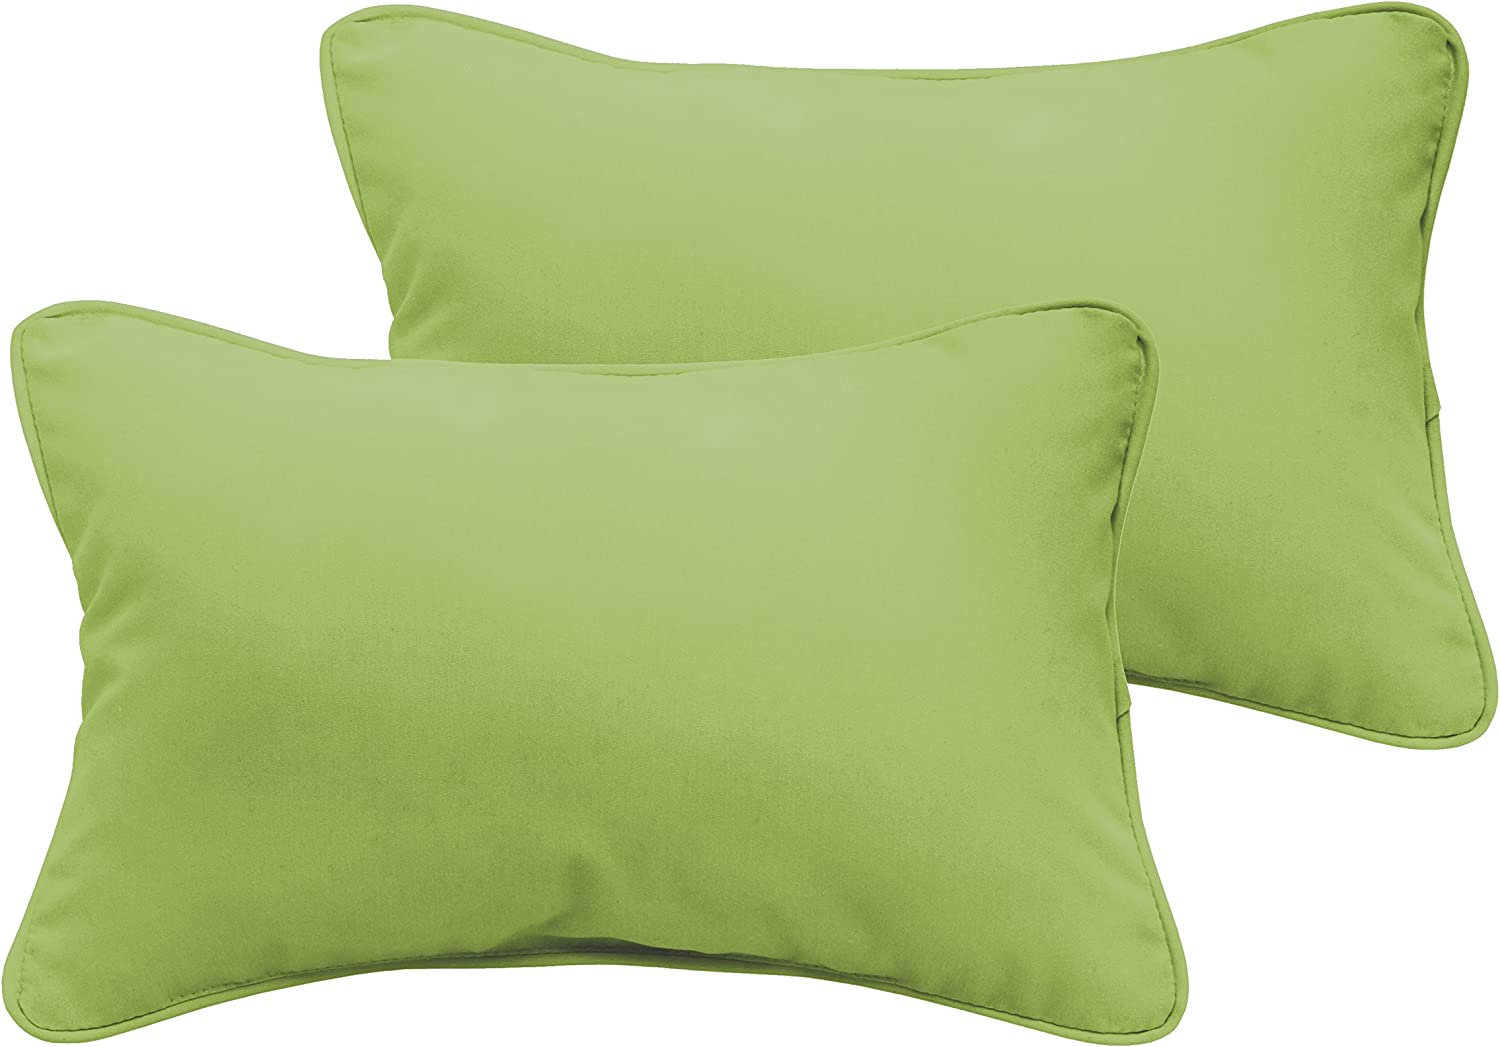 Mozaic Company AZPS7168 Indoor Outdoor Lumbar Pillows with Corded Edges, Set of 2, 12 x 18, Apple Green